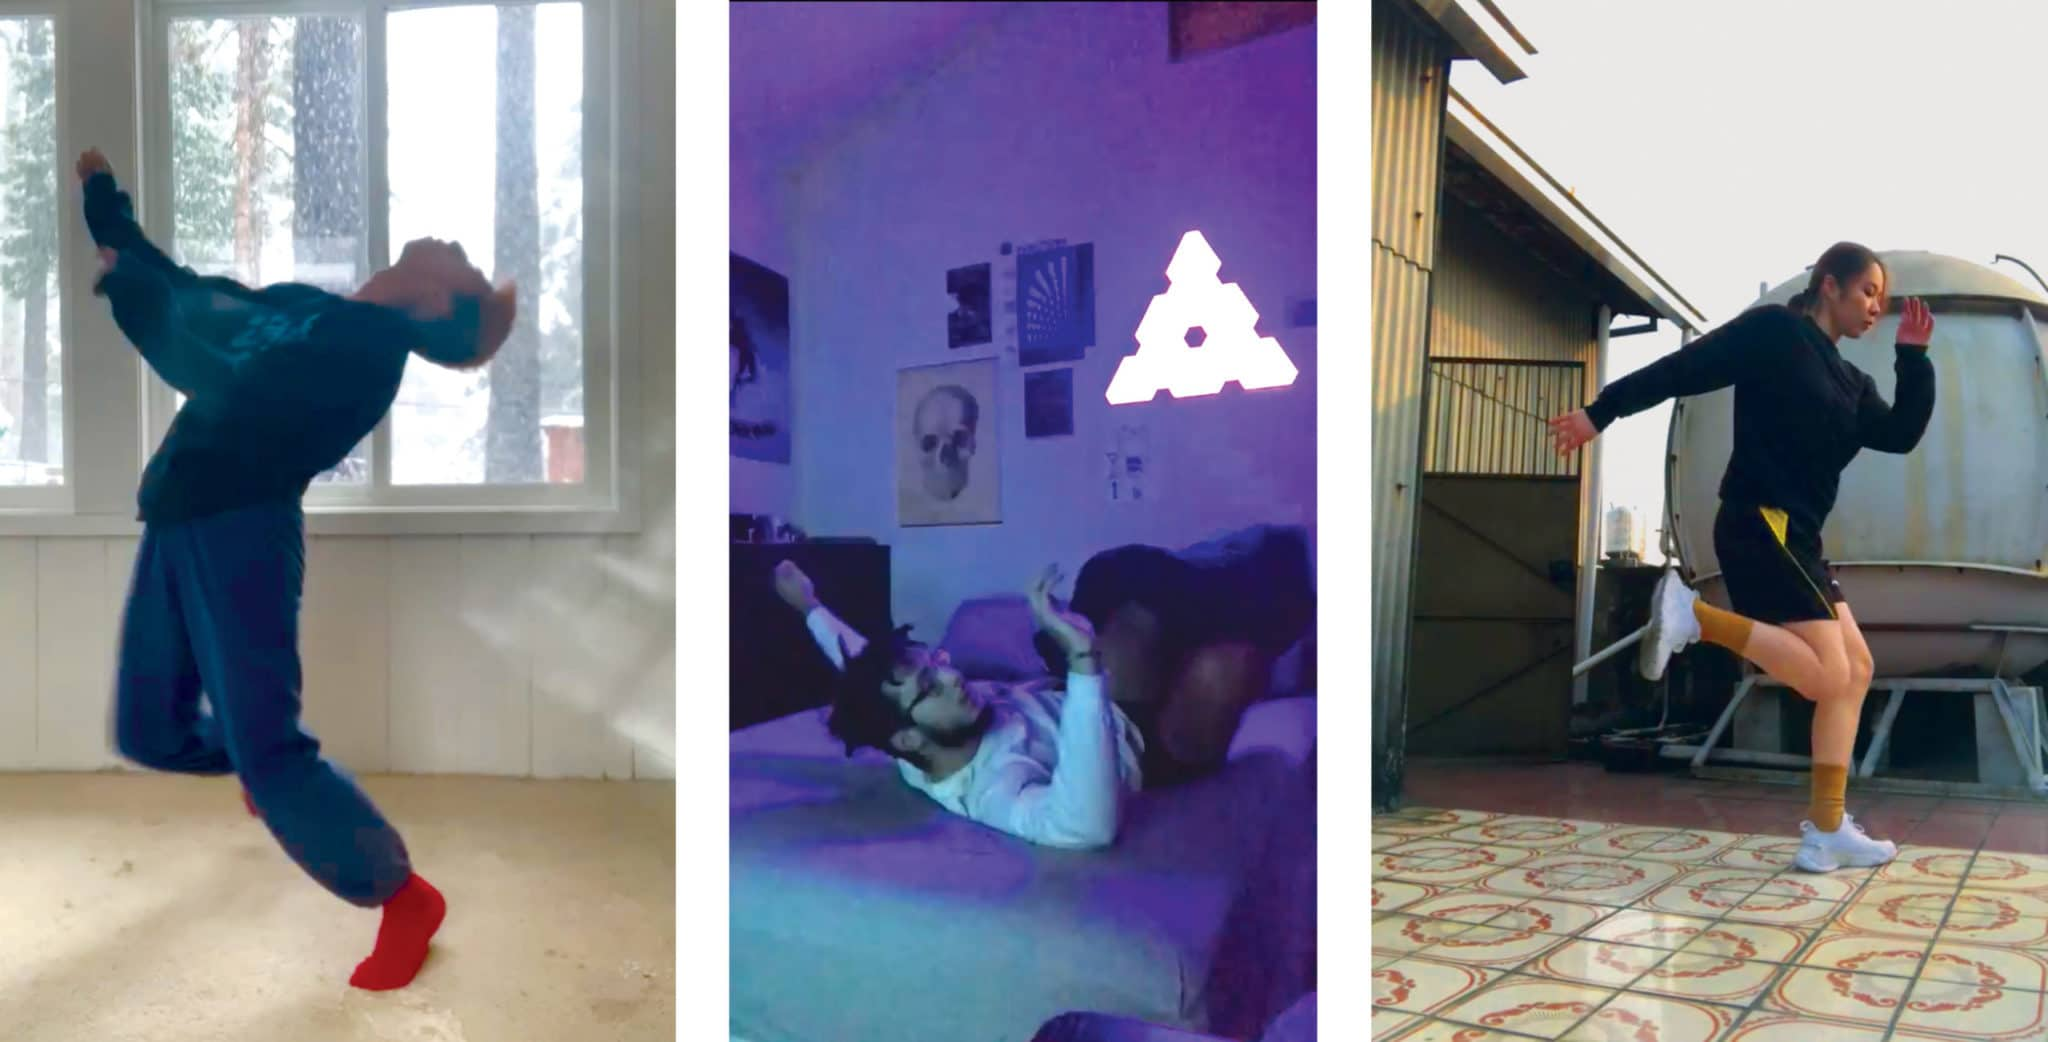 Stills from dance videos created by Emilio Wettlaufer, Justin Farmer, and Tzong-Han (Hanna) Wu for Nina Flagg's Hip Hop Composition and Hip Hop Technique class